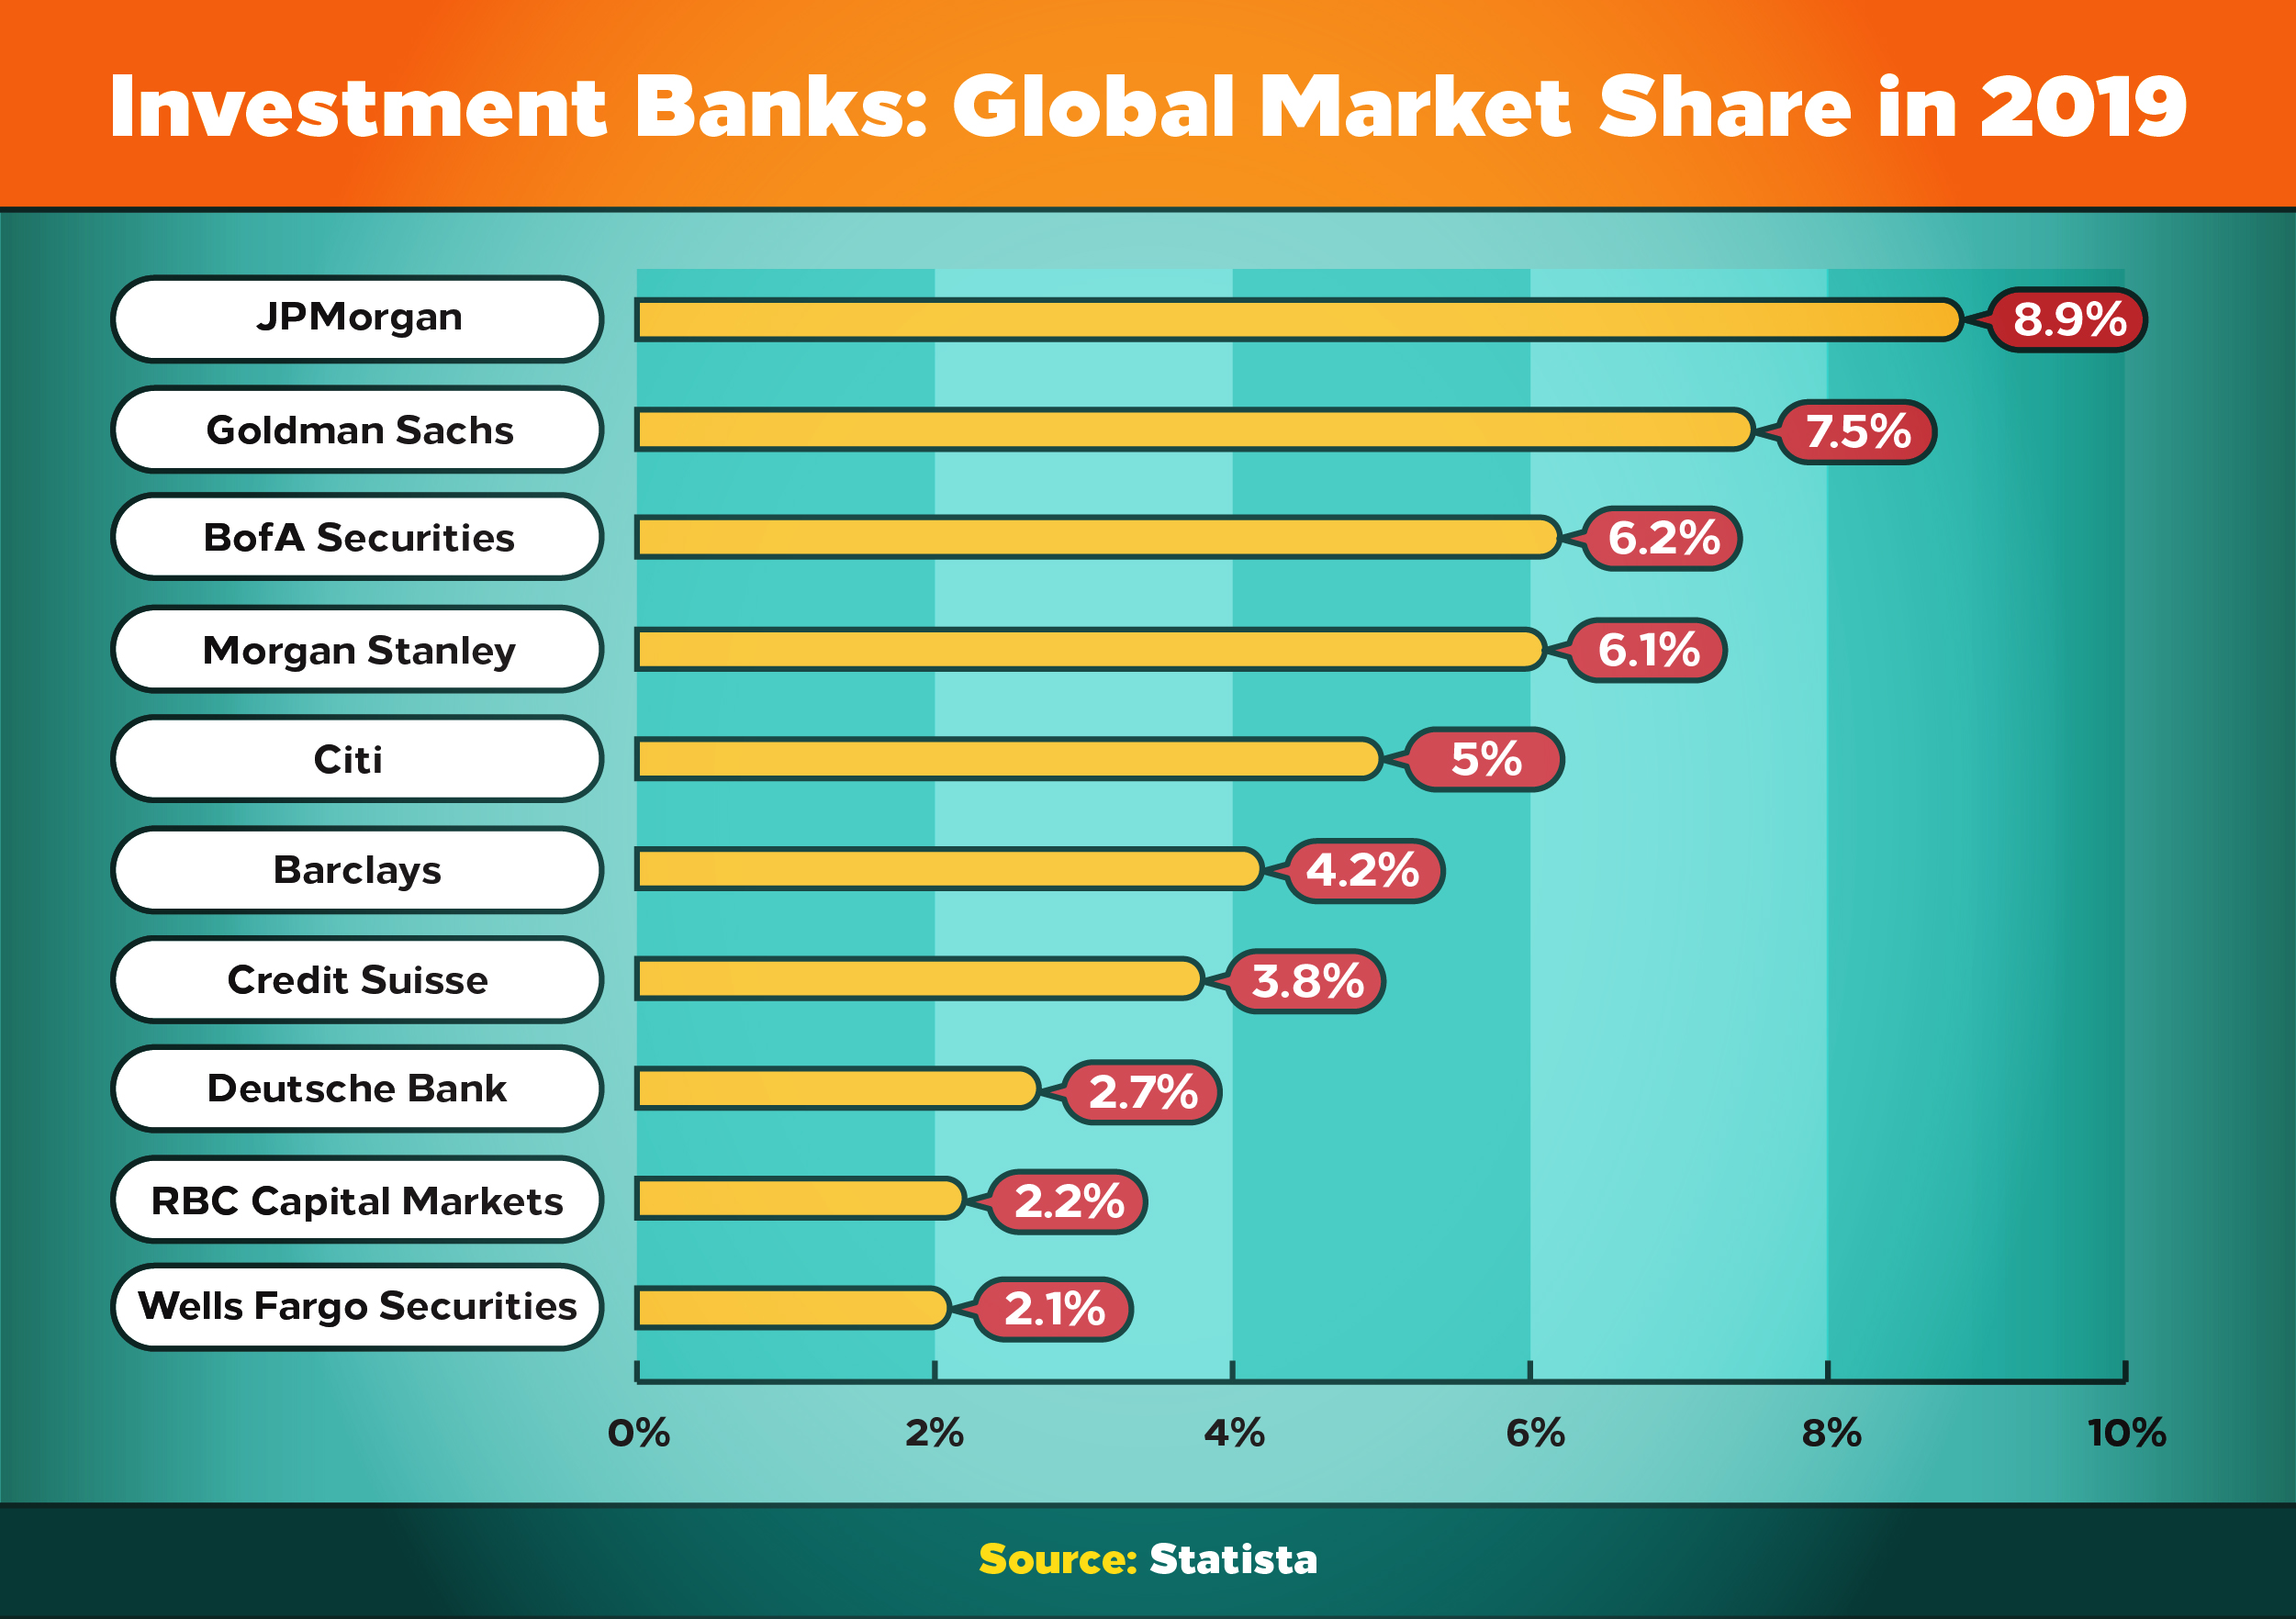 The largest investment banks by global market share include JPMorgan, Goldman Sachs, BofA, and Morgan Stanley.